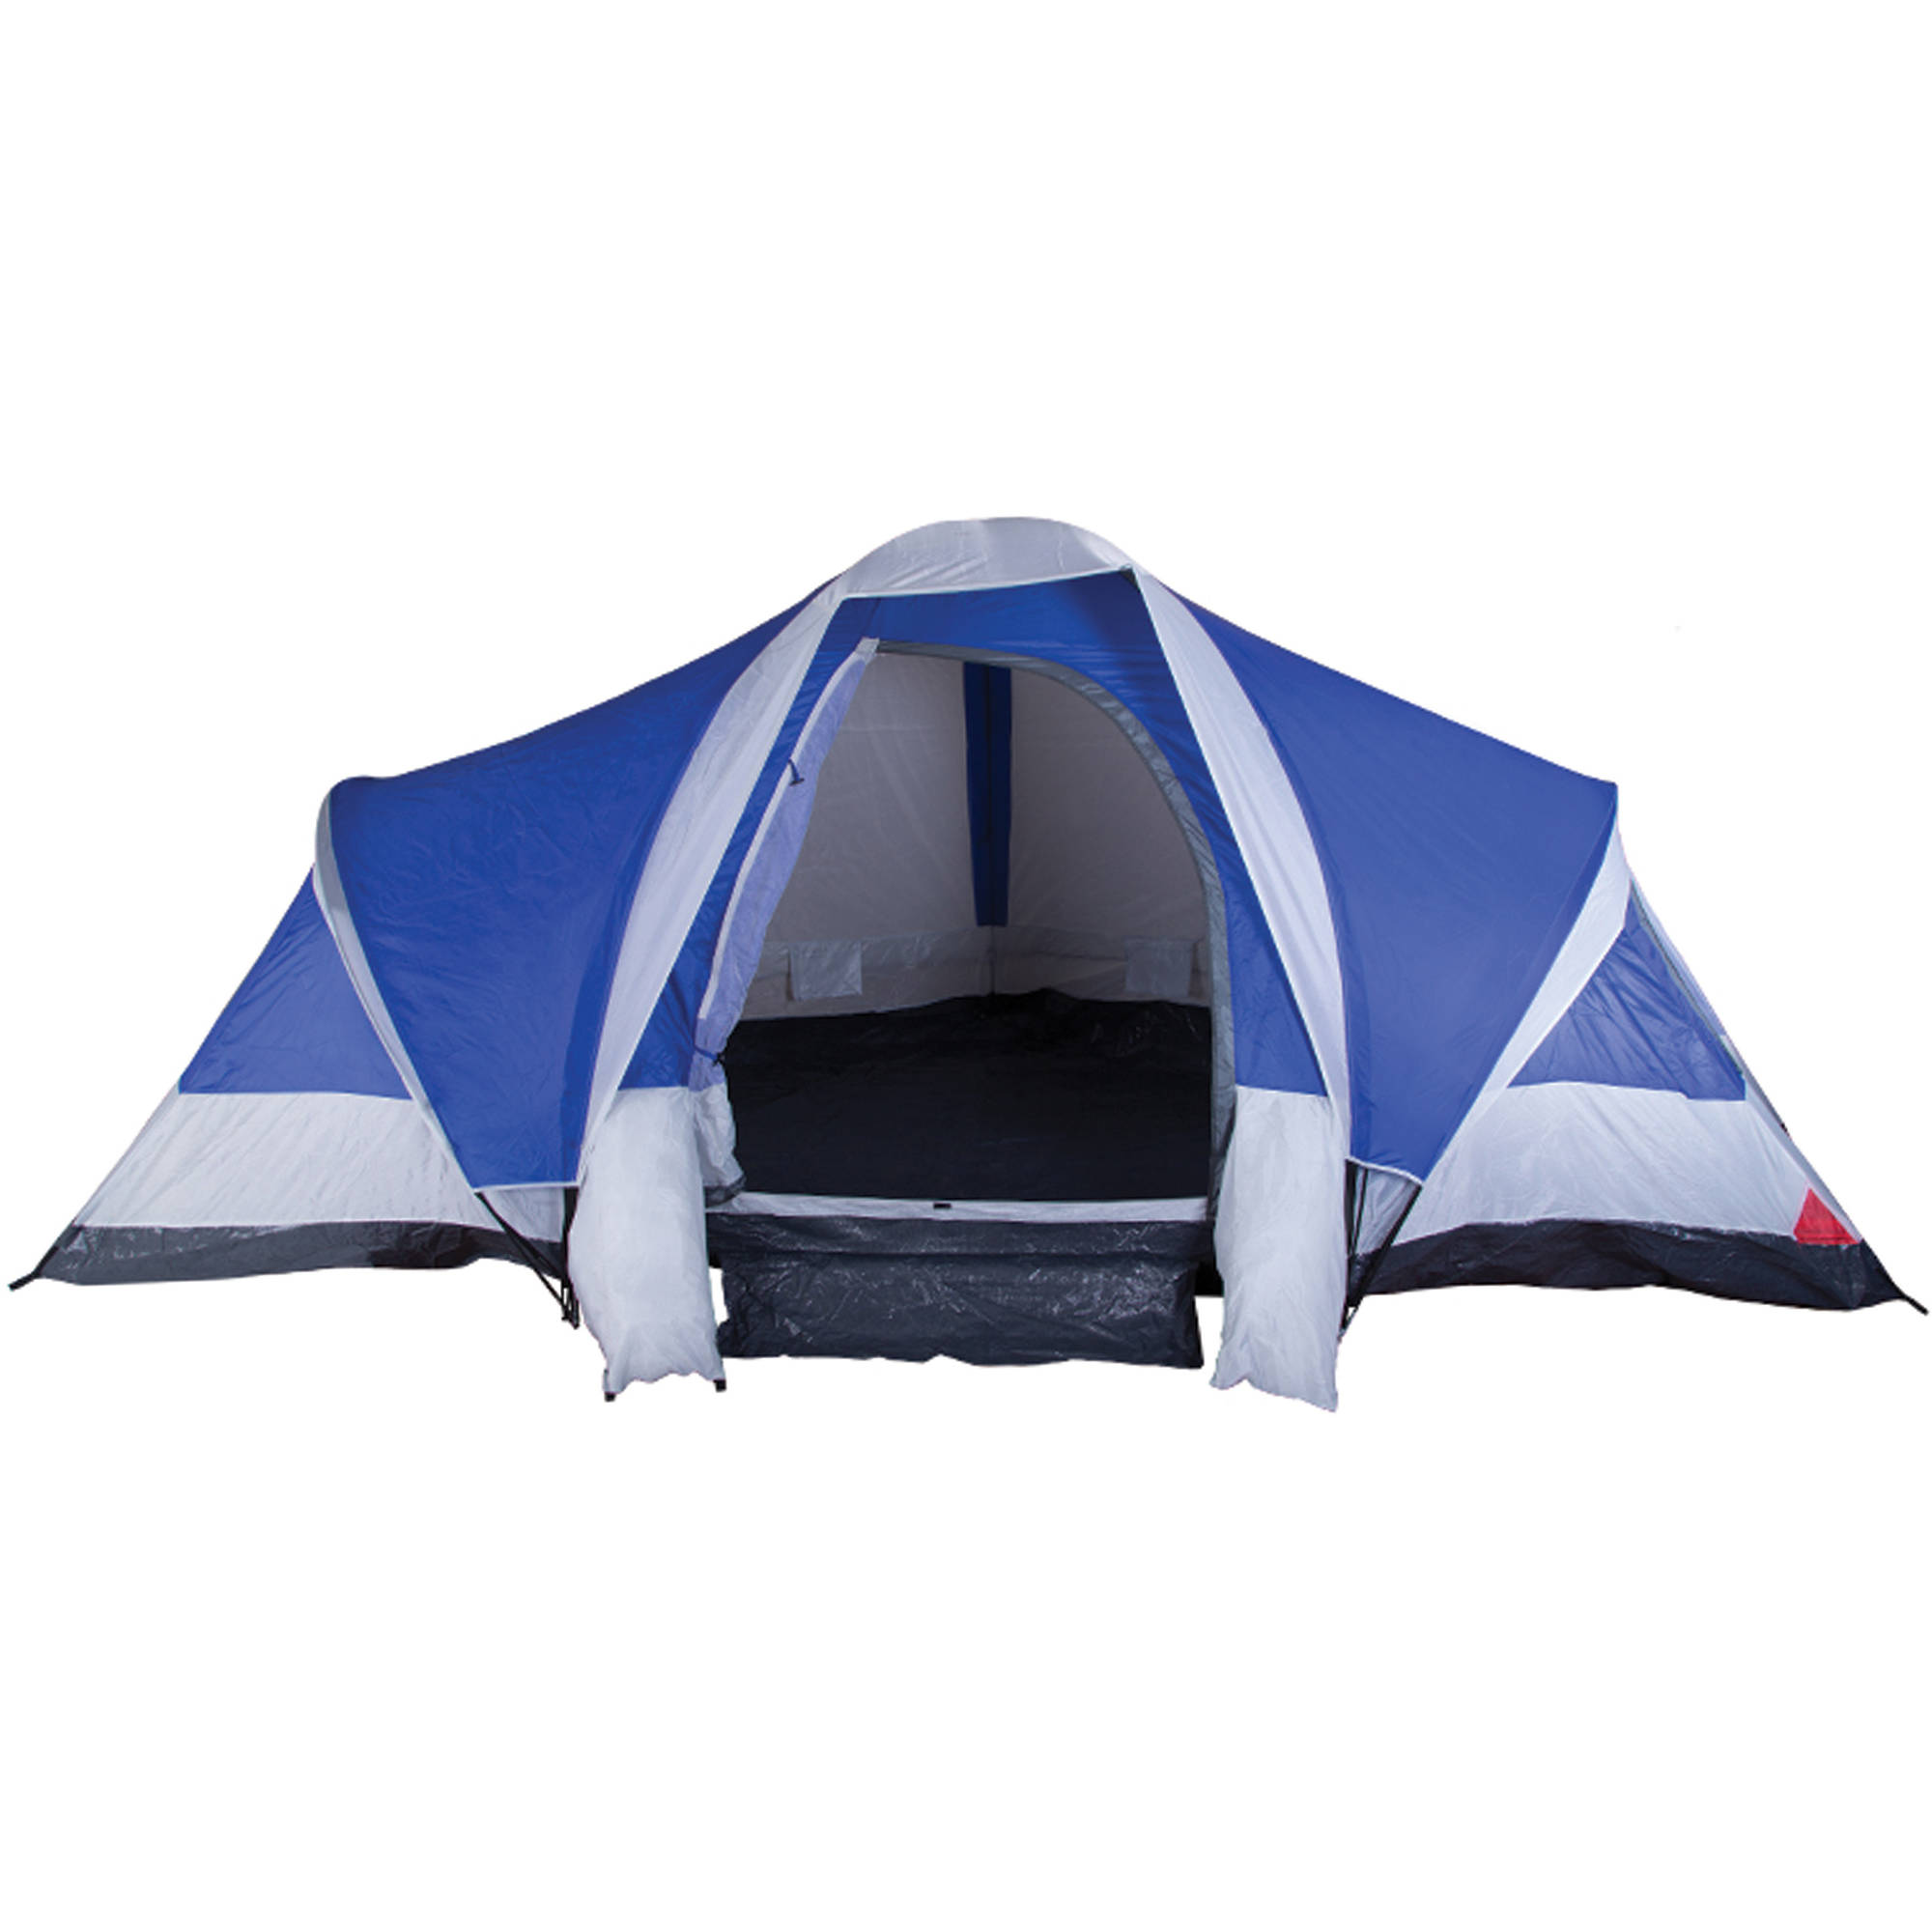 Stansport Grand 3-Room Tent Blue/White  sc 1 st  Walmart.com & Stansport Grand 3-Room Tent Blue/White - Walmart.com